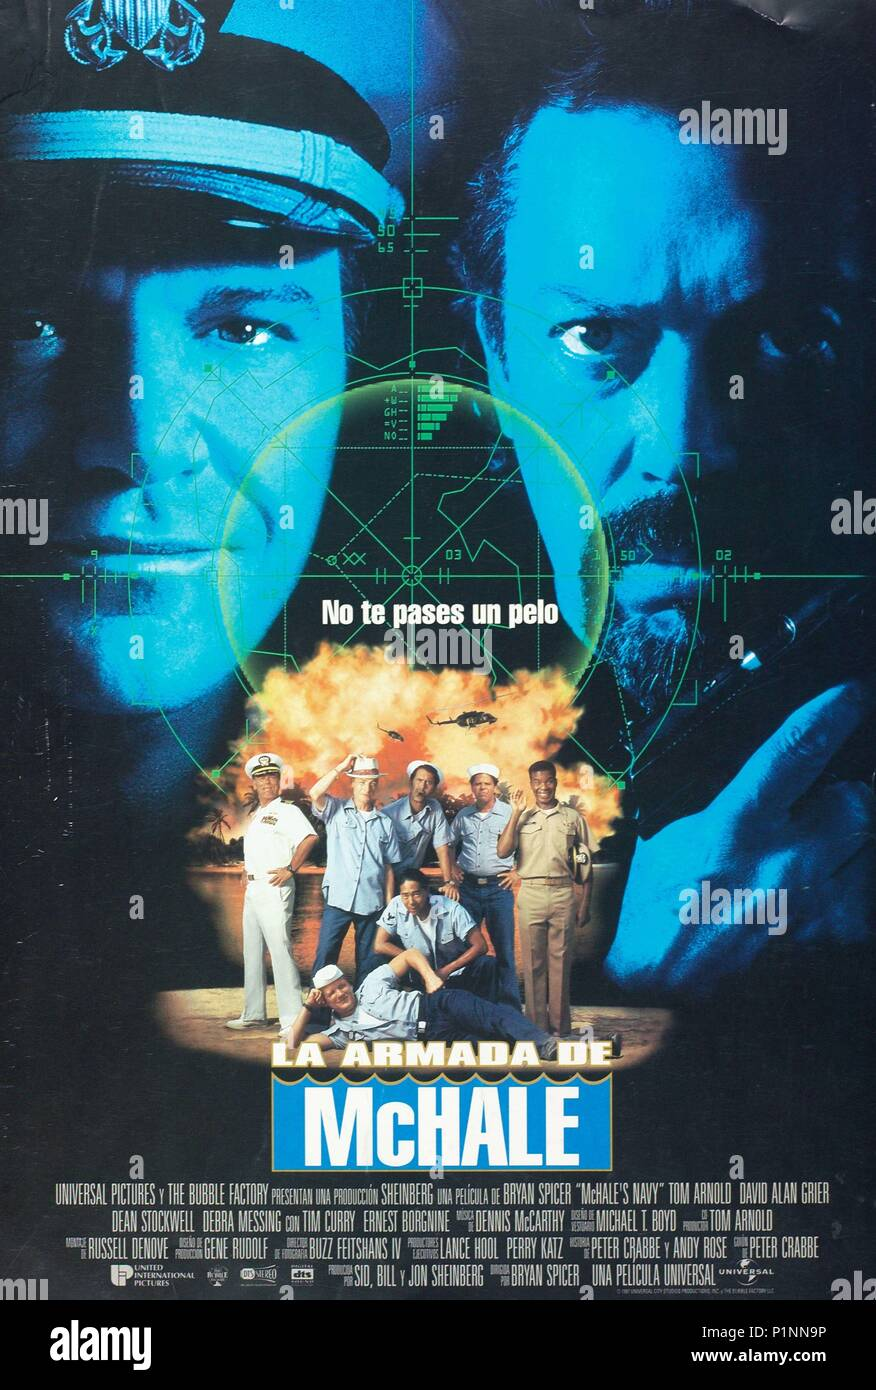 Original Film Title: MCHALE'S NAVY.  English Title: MCHALE'S NAVY.  Film Director: BRYAN SPICER.  Year: 1997. Credit: UNIVERSAL STUDIOS & THE BUBBLE FACTORY / Album - Stock Image